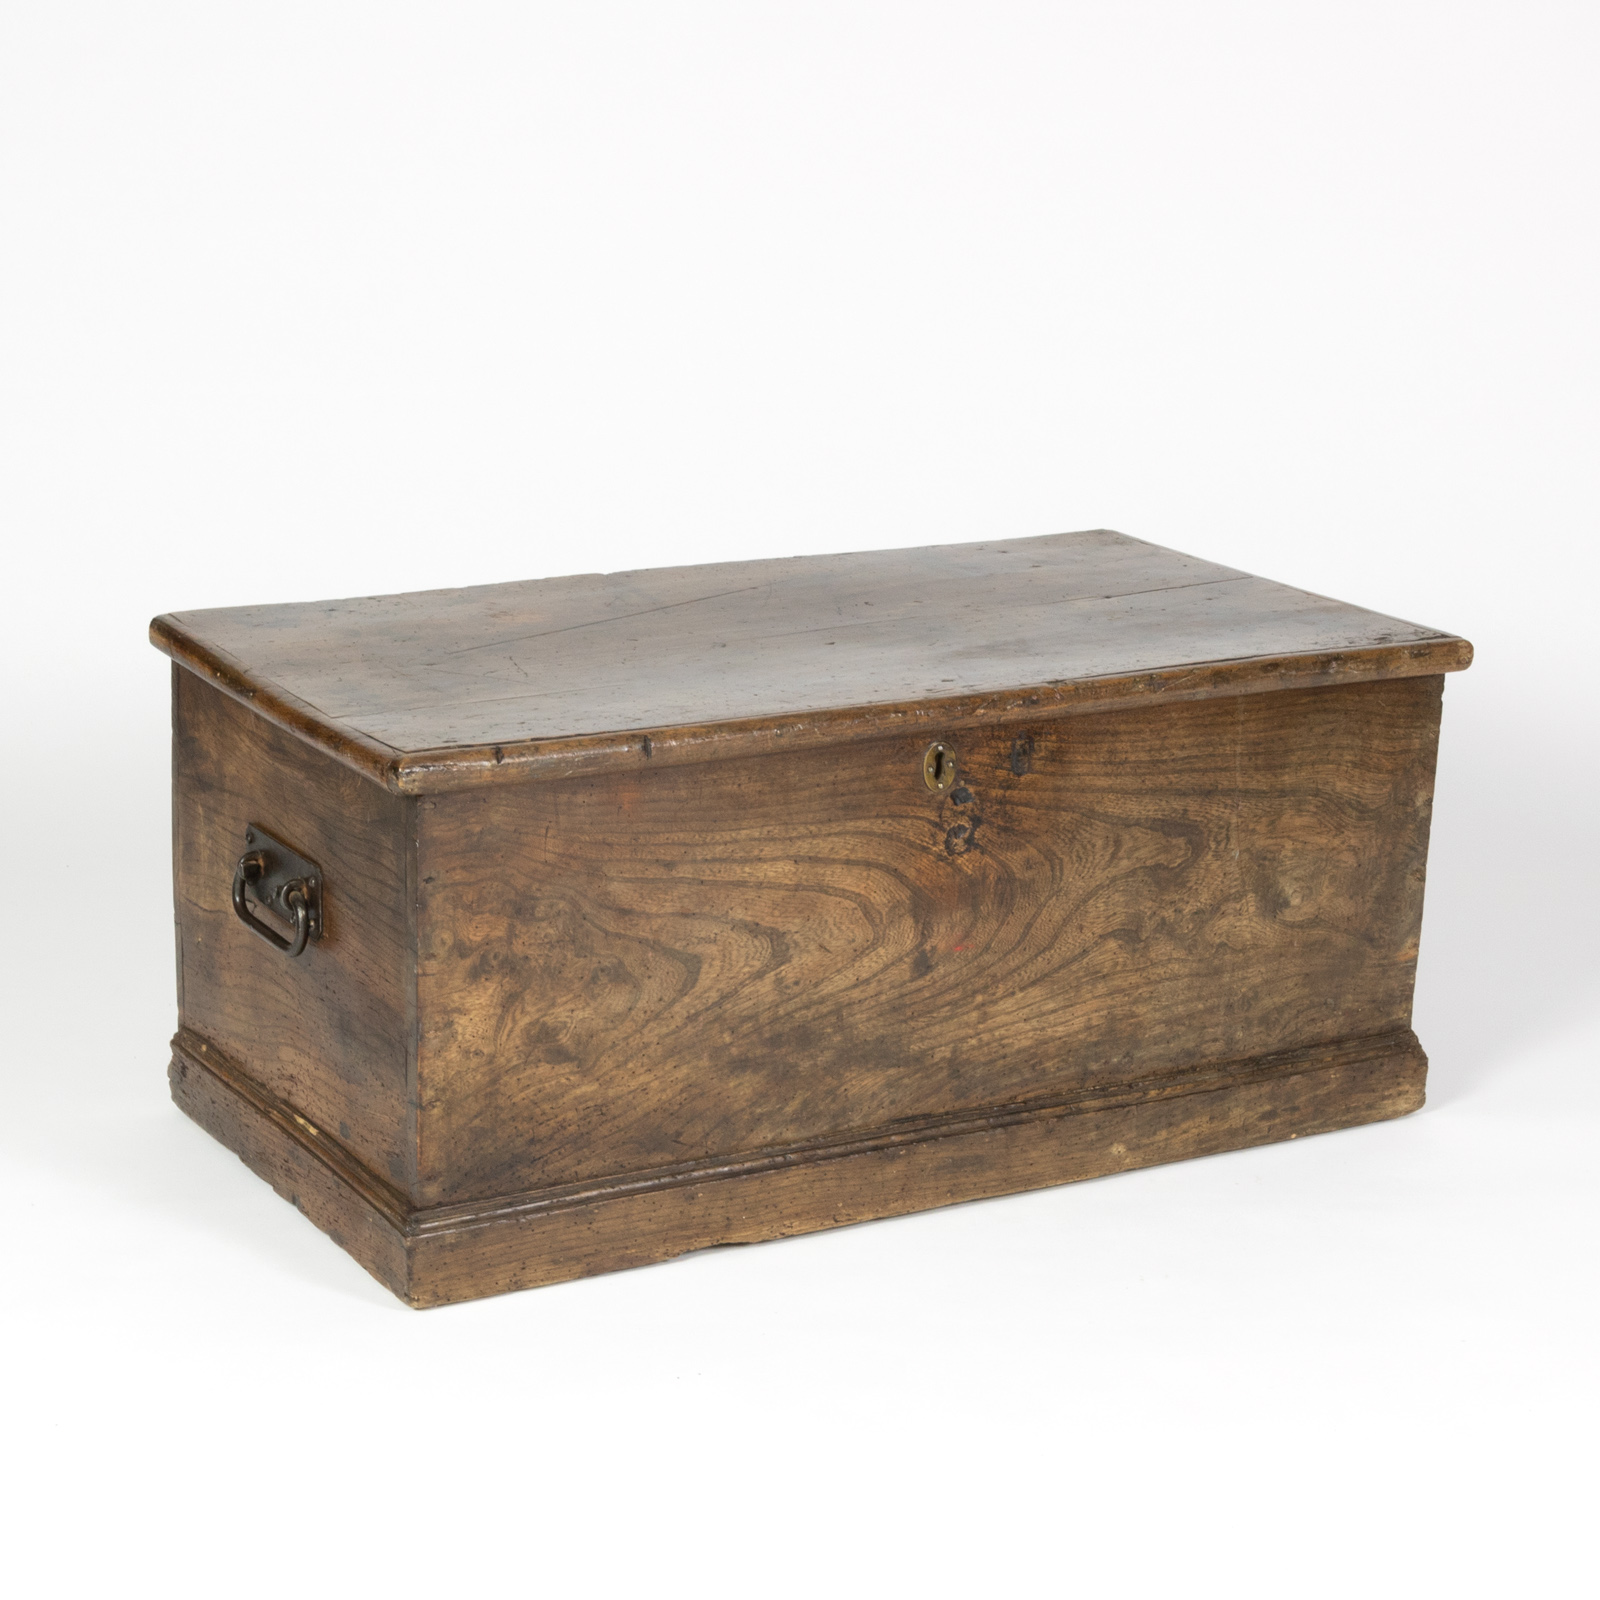 Rustic Wooden Trunk Blanket Chest English 1800 S 415 355 1690